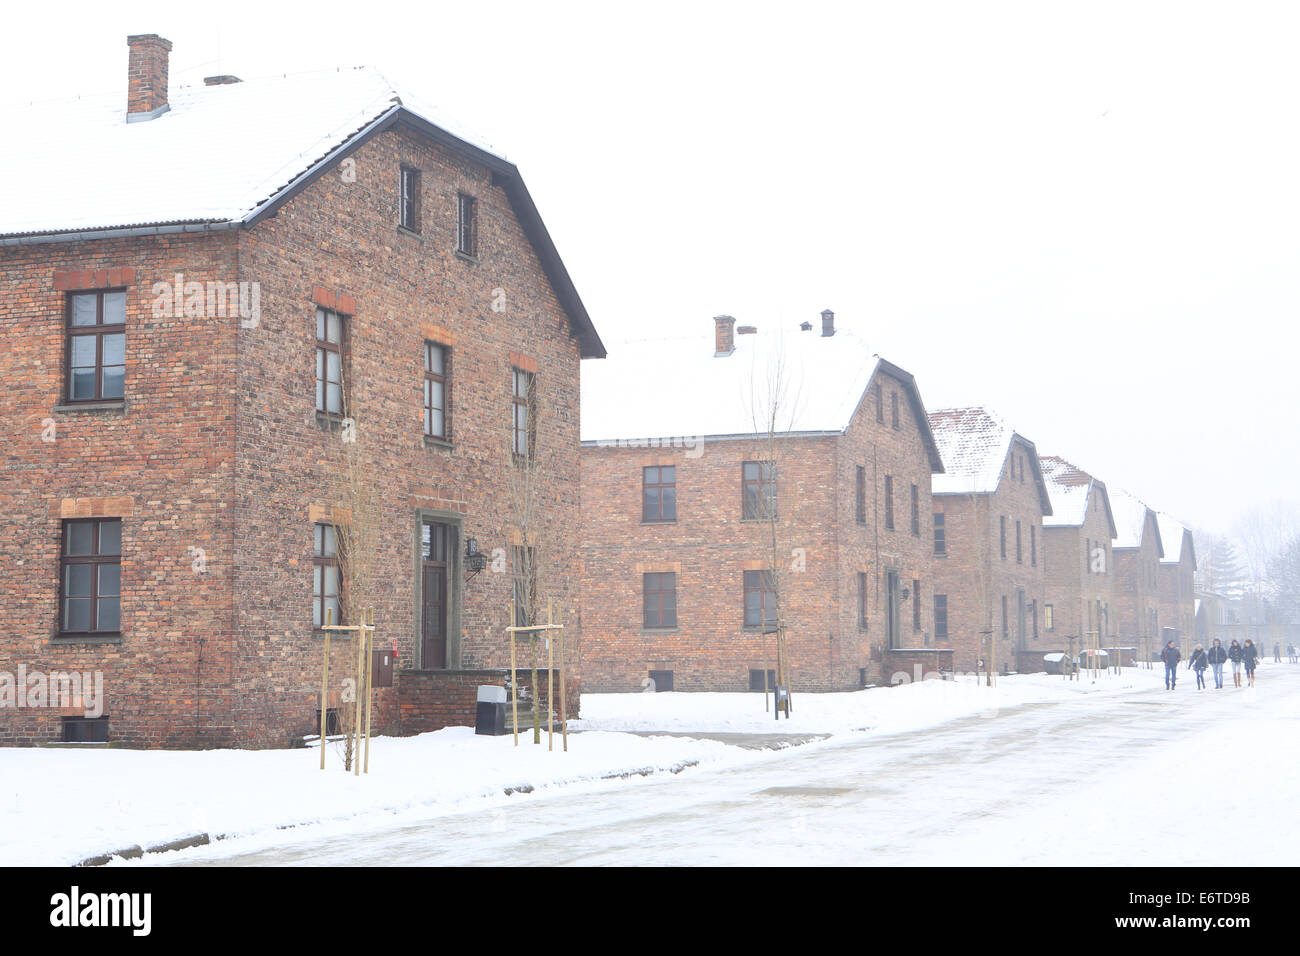 Residential barracks at the Auschwitz-Birkenau Memorial to the holocaust perpetrated by Nazi Germany - Stock Image